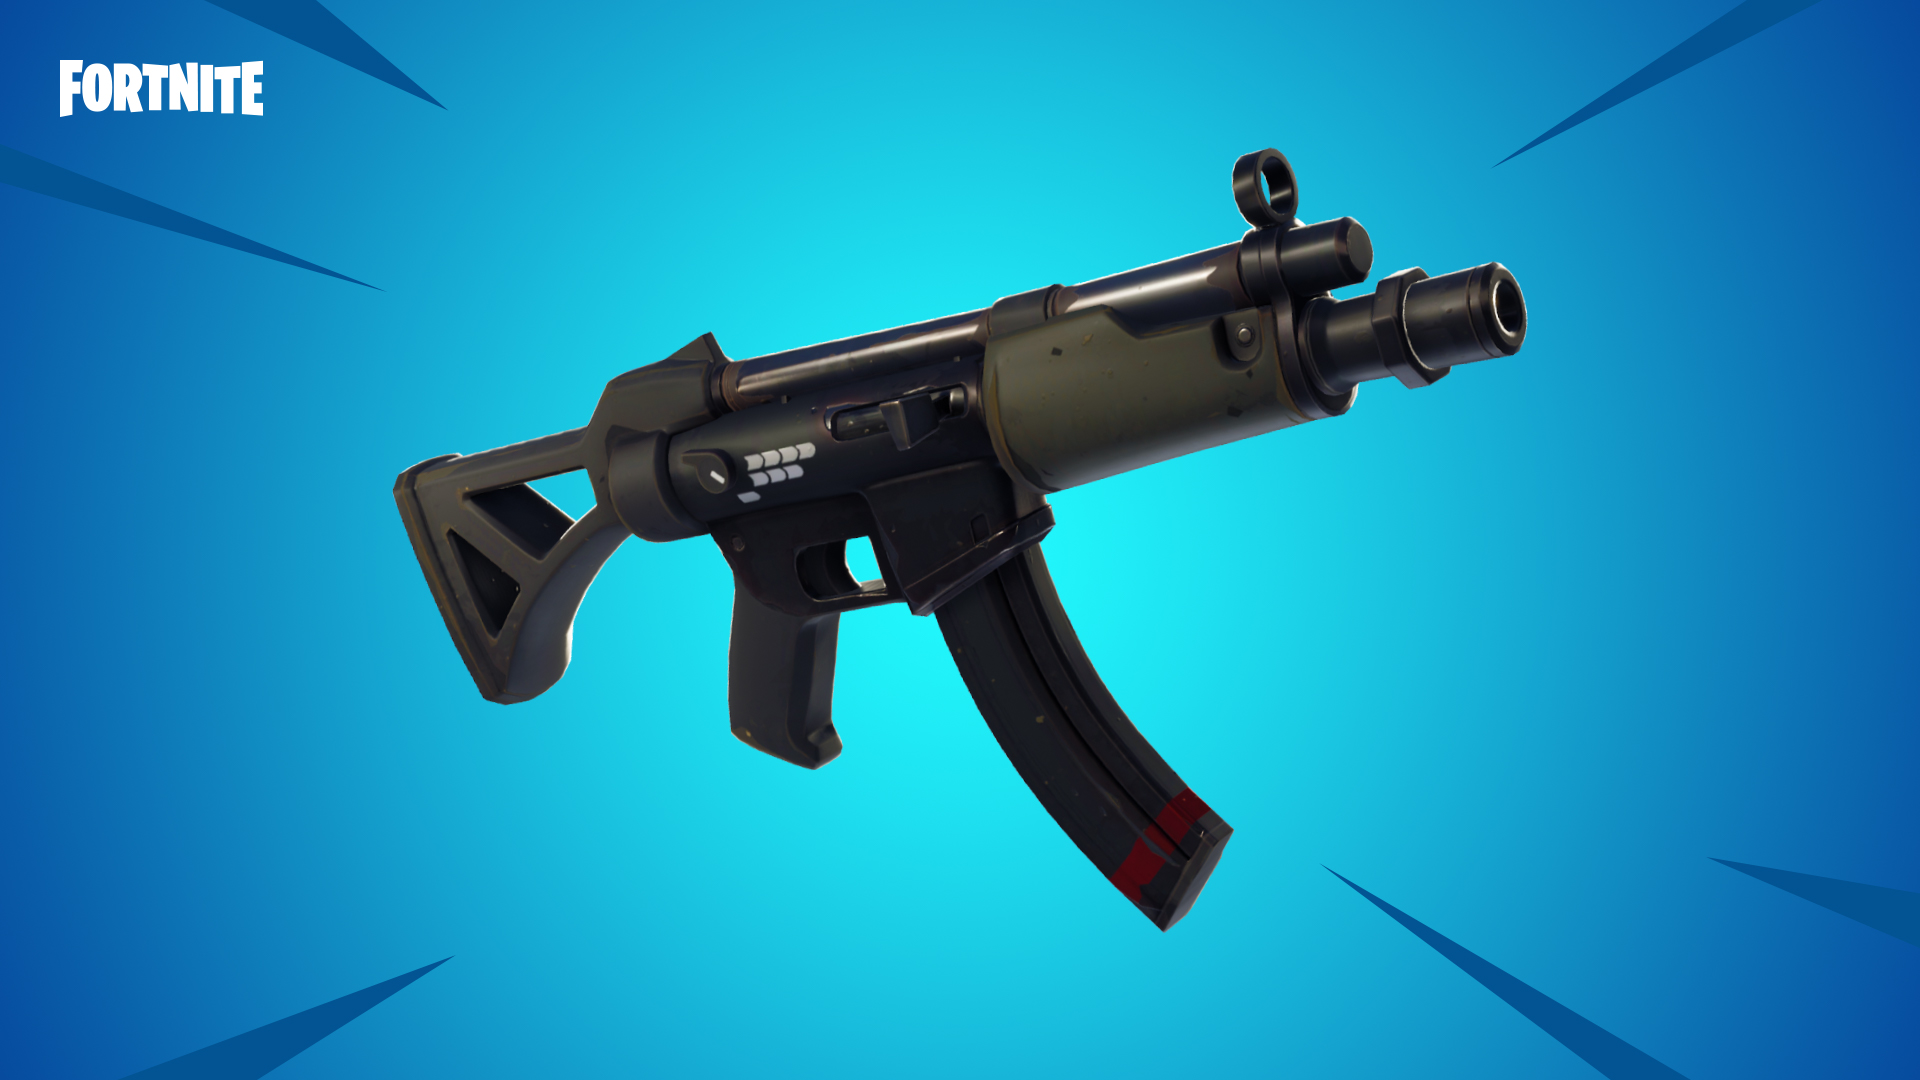 Fortnite s v5 0 Content Update Adds Submachine Gun  Typewriter     Fortnite s v5 0 Content Update Adds Submachine Gun  Typewriter Assault Rifle